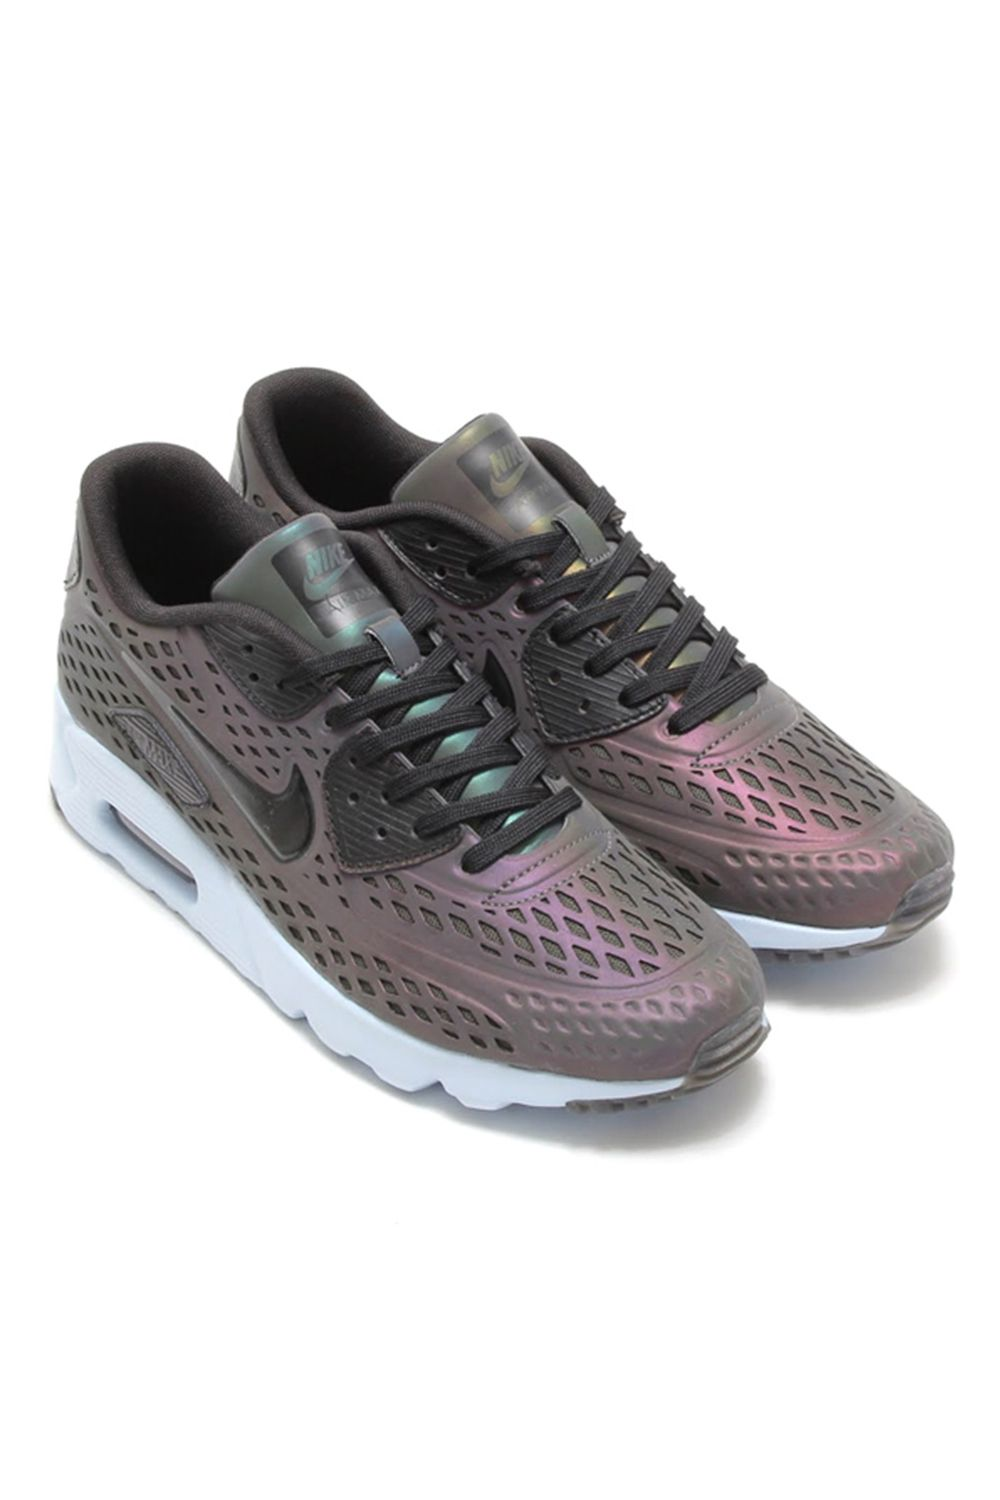 Air Max 90 Ultra Moire Iridescent 11 sneakers you can actually wear on scorching summer days